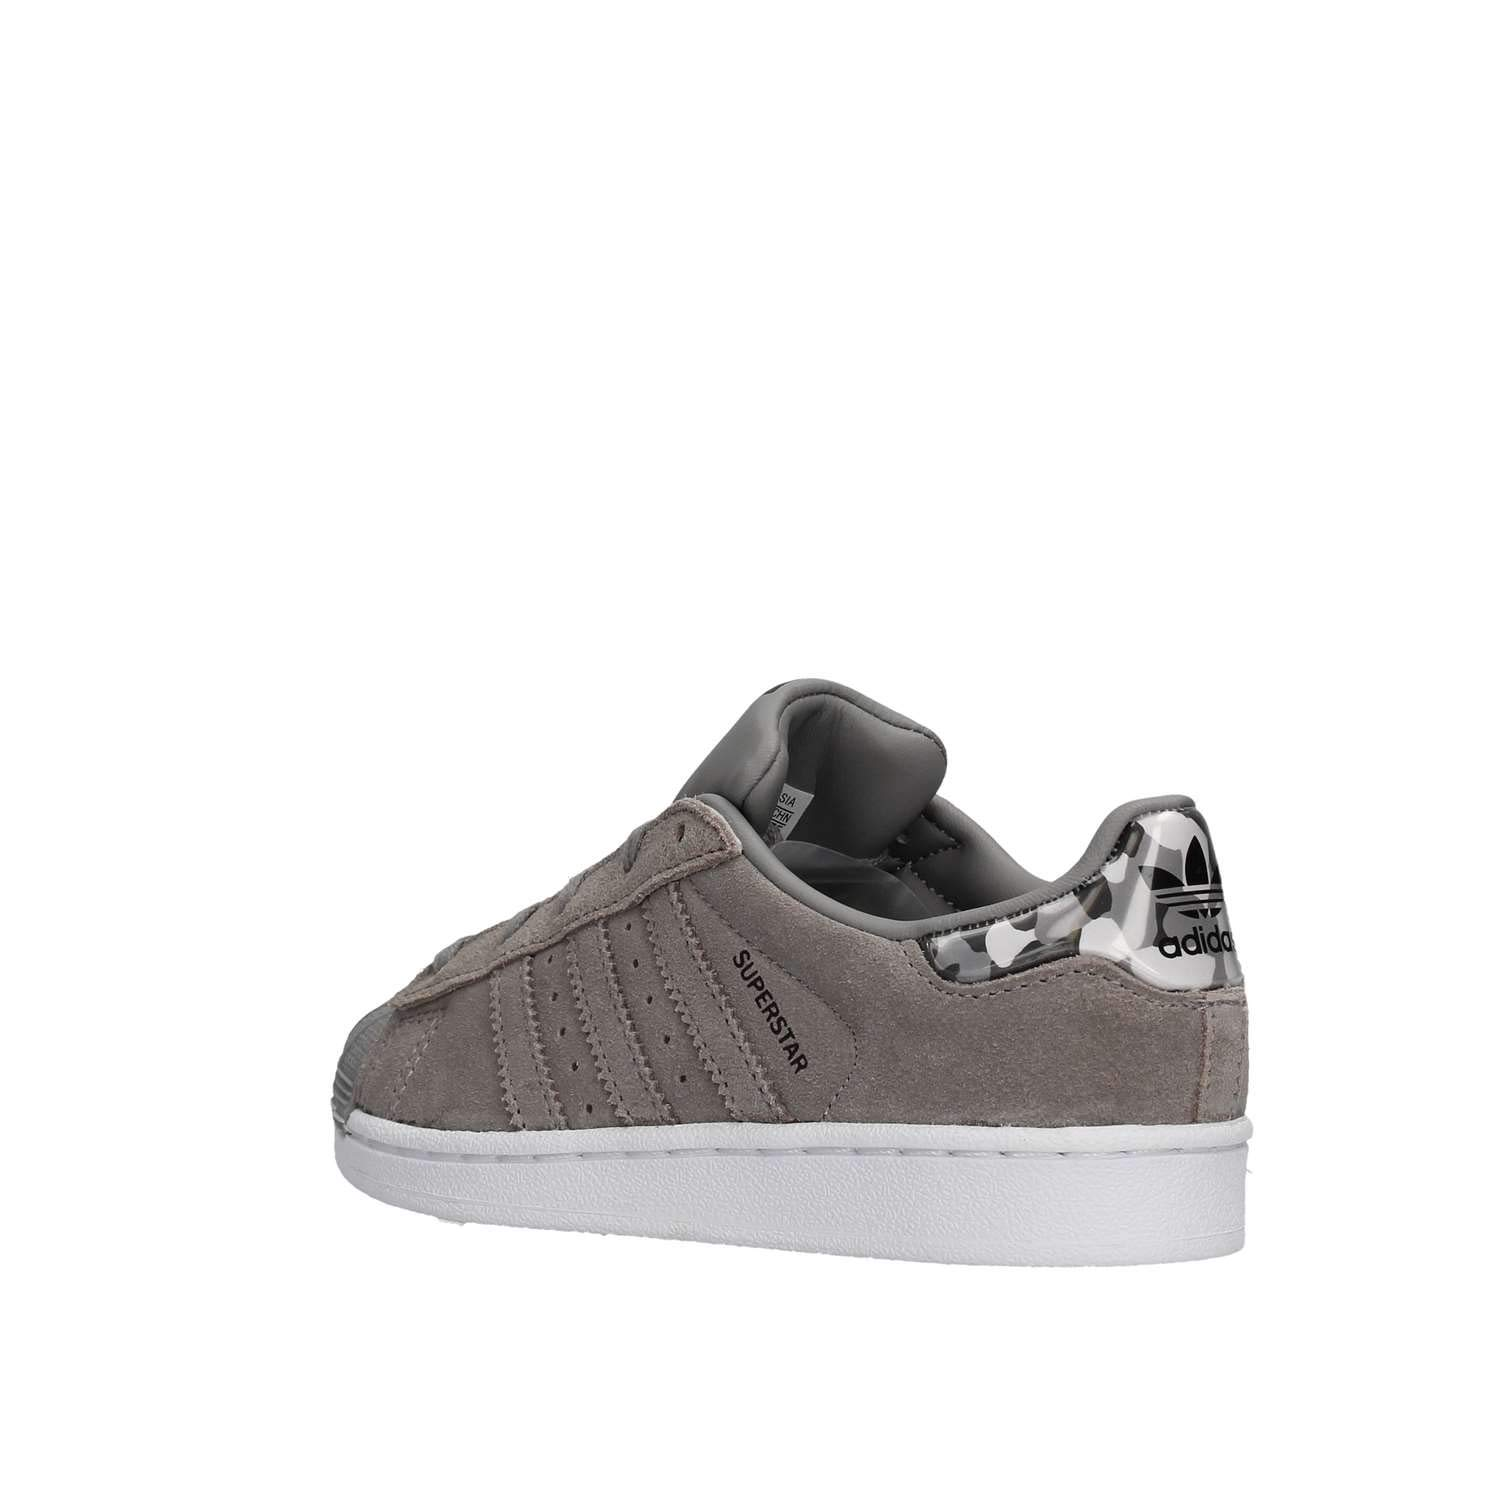 detailed pictures 78dd1 645bd Adidas Superstar C, Scarpe da Fitness Unisex – Bambini ingrandisci